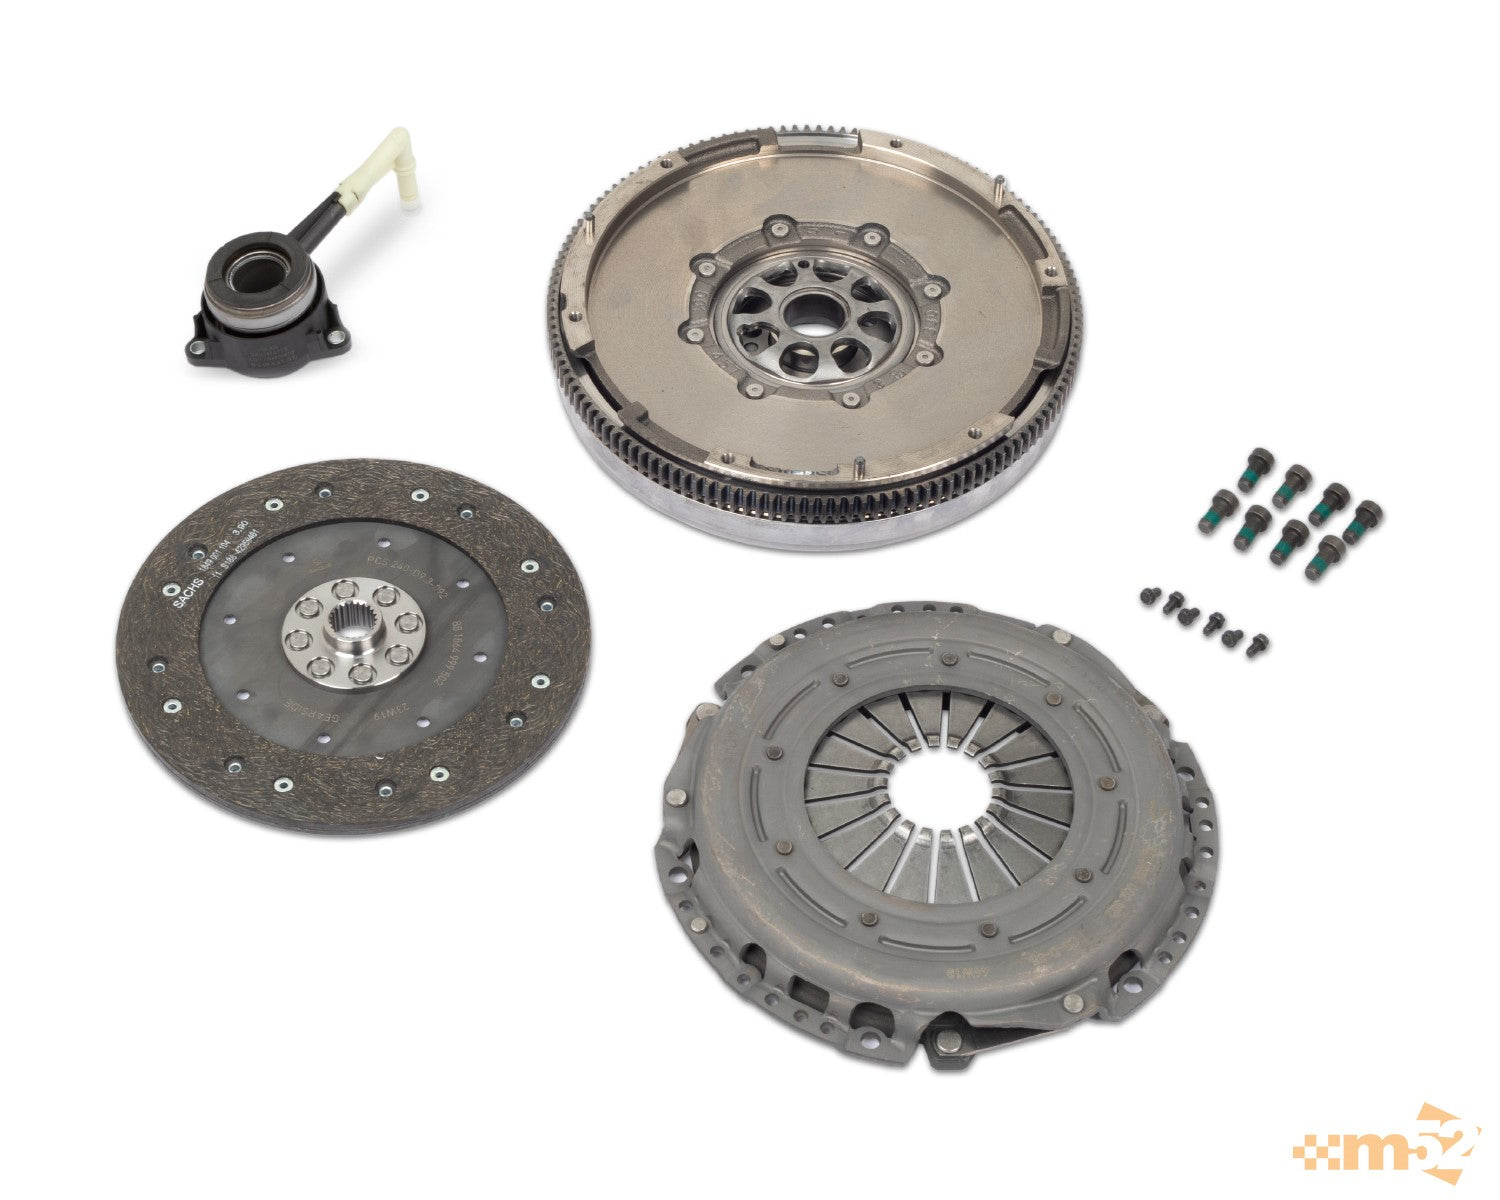 m52 Clutch Upgrade - Fully Fitted at m52 HQ - mountune52